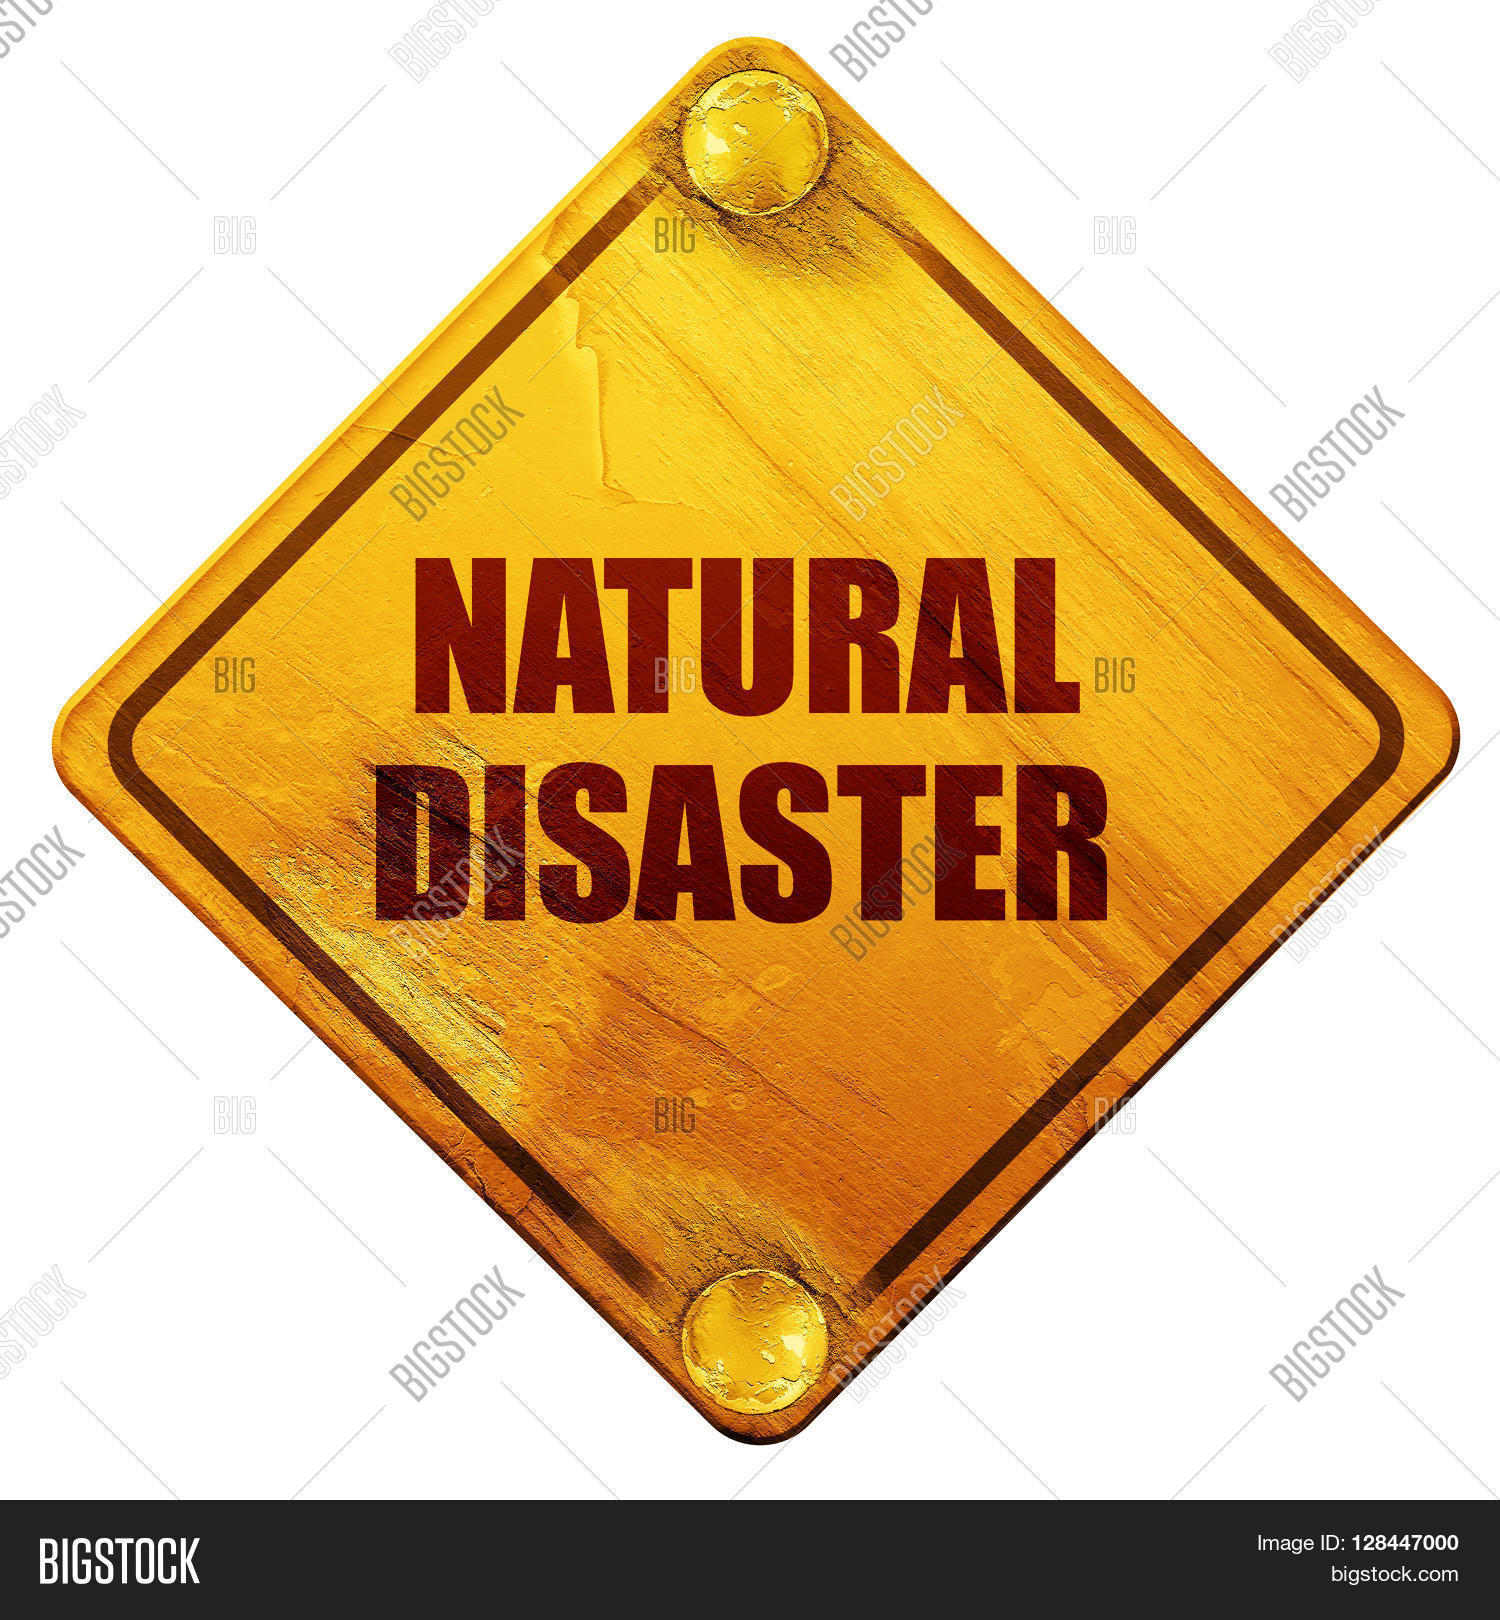 Natural Disaster, 3d Rendering, Image & Photo  Bigstock. Cuban Restaurant Los Angeles. Business Growth Consulting Tax Relief Denver. Does My Employer Have Workers Compensation. North Point Collision Center 2 Month Loans. Best College For Military Mortgage In Houston. Business Credit Card Applications Online. Maritime Law International Waters. Printing Companies Seattle Cost Of Factoring